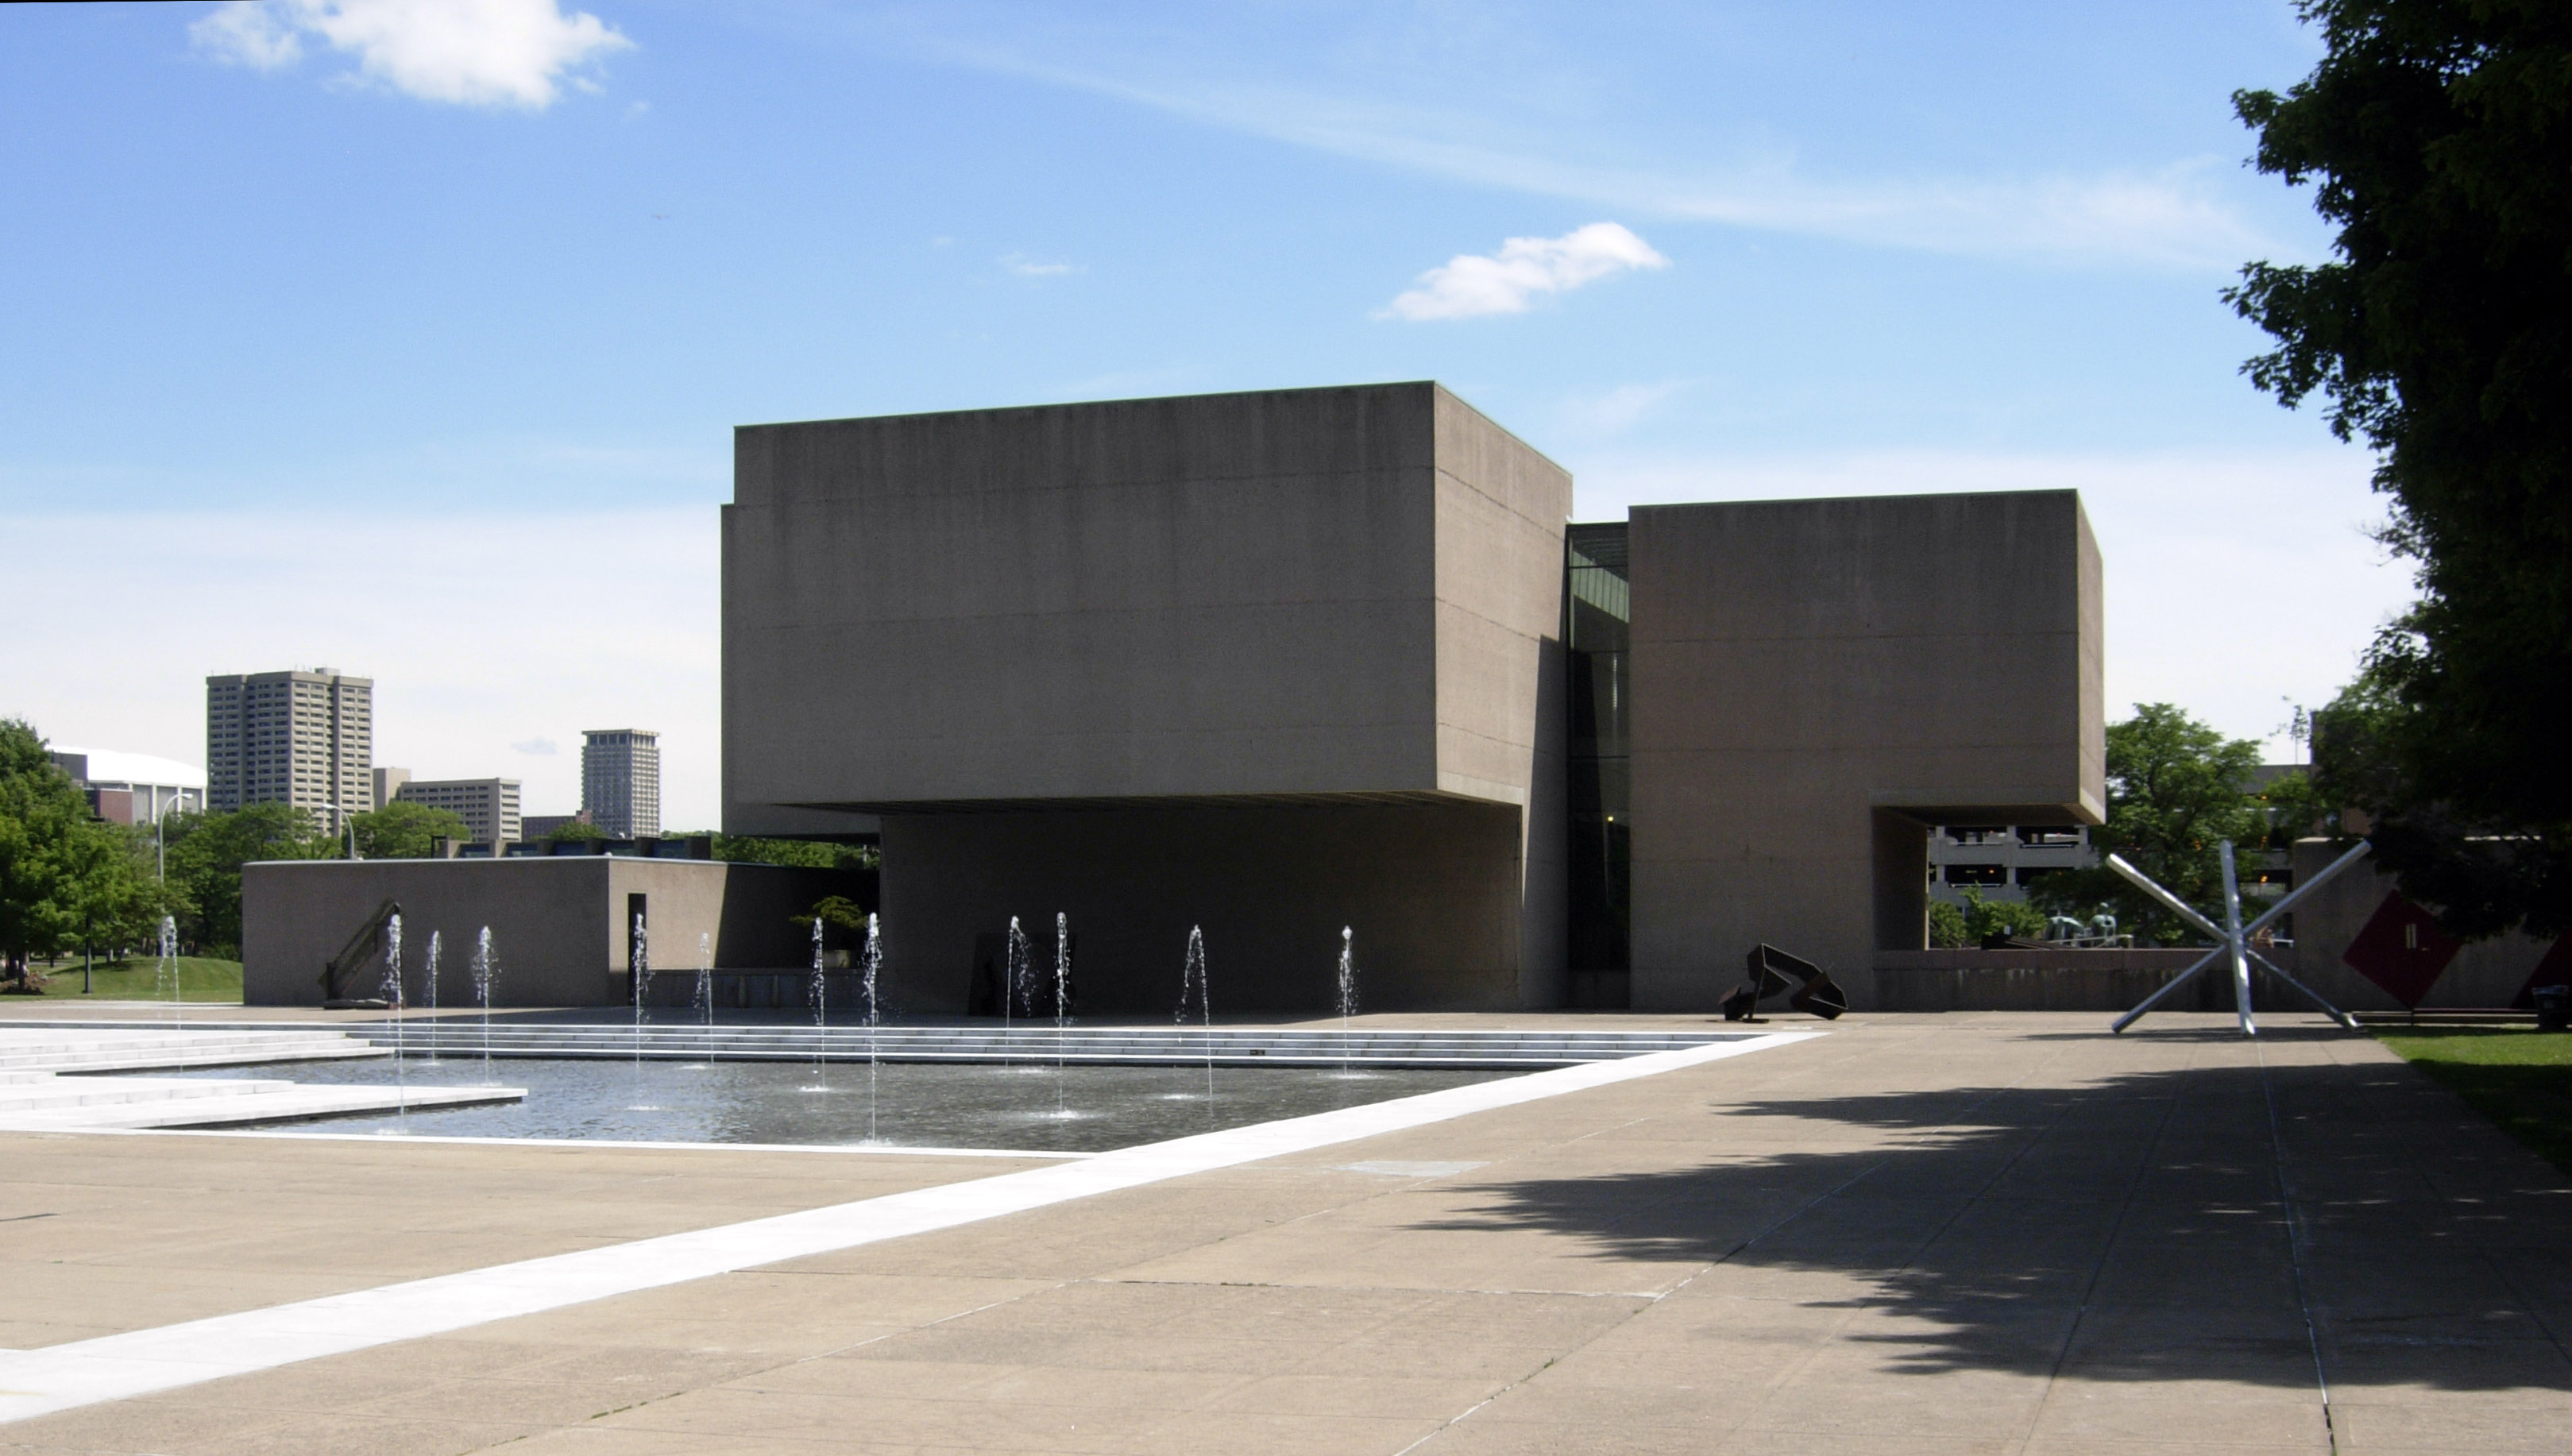 Exterior view of the Everson Museum of Art